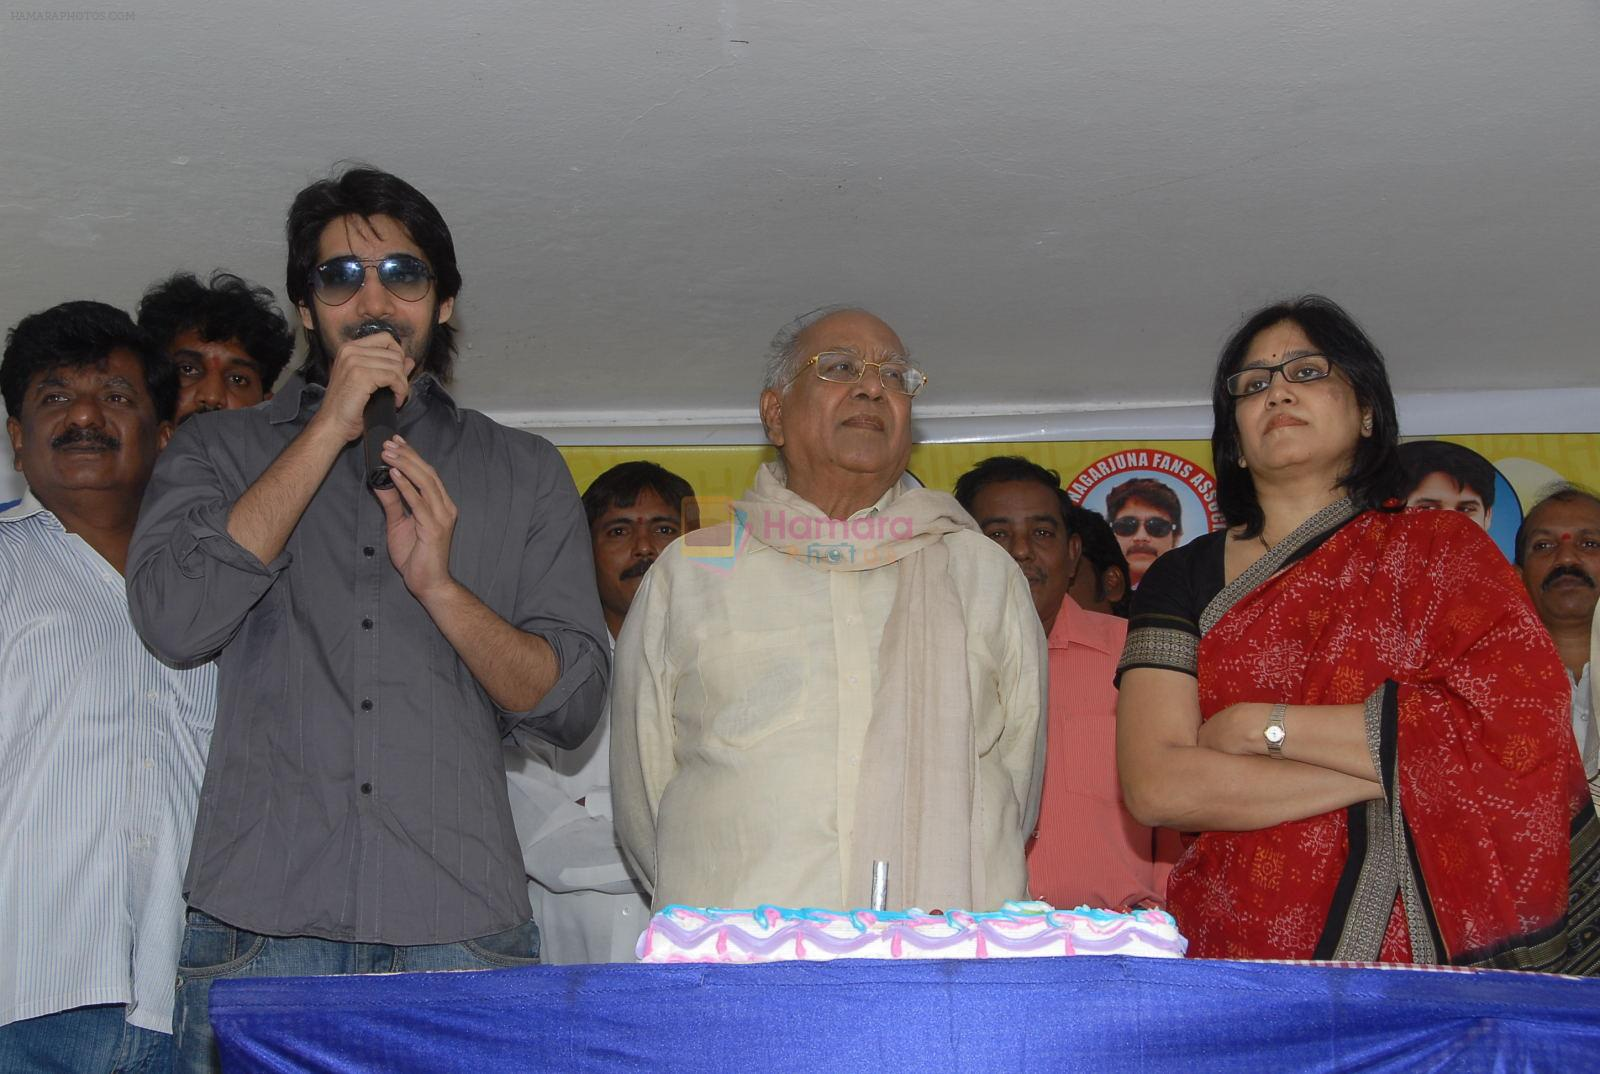 Nagarjuna Turns 52 - Birthday Celebrations on 29th August 2011